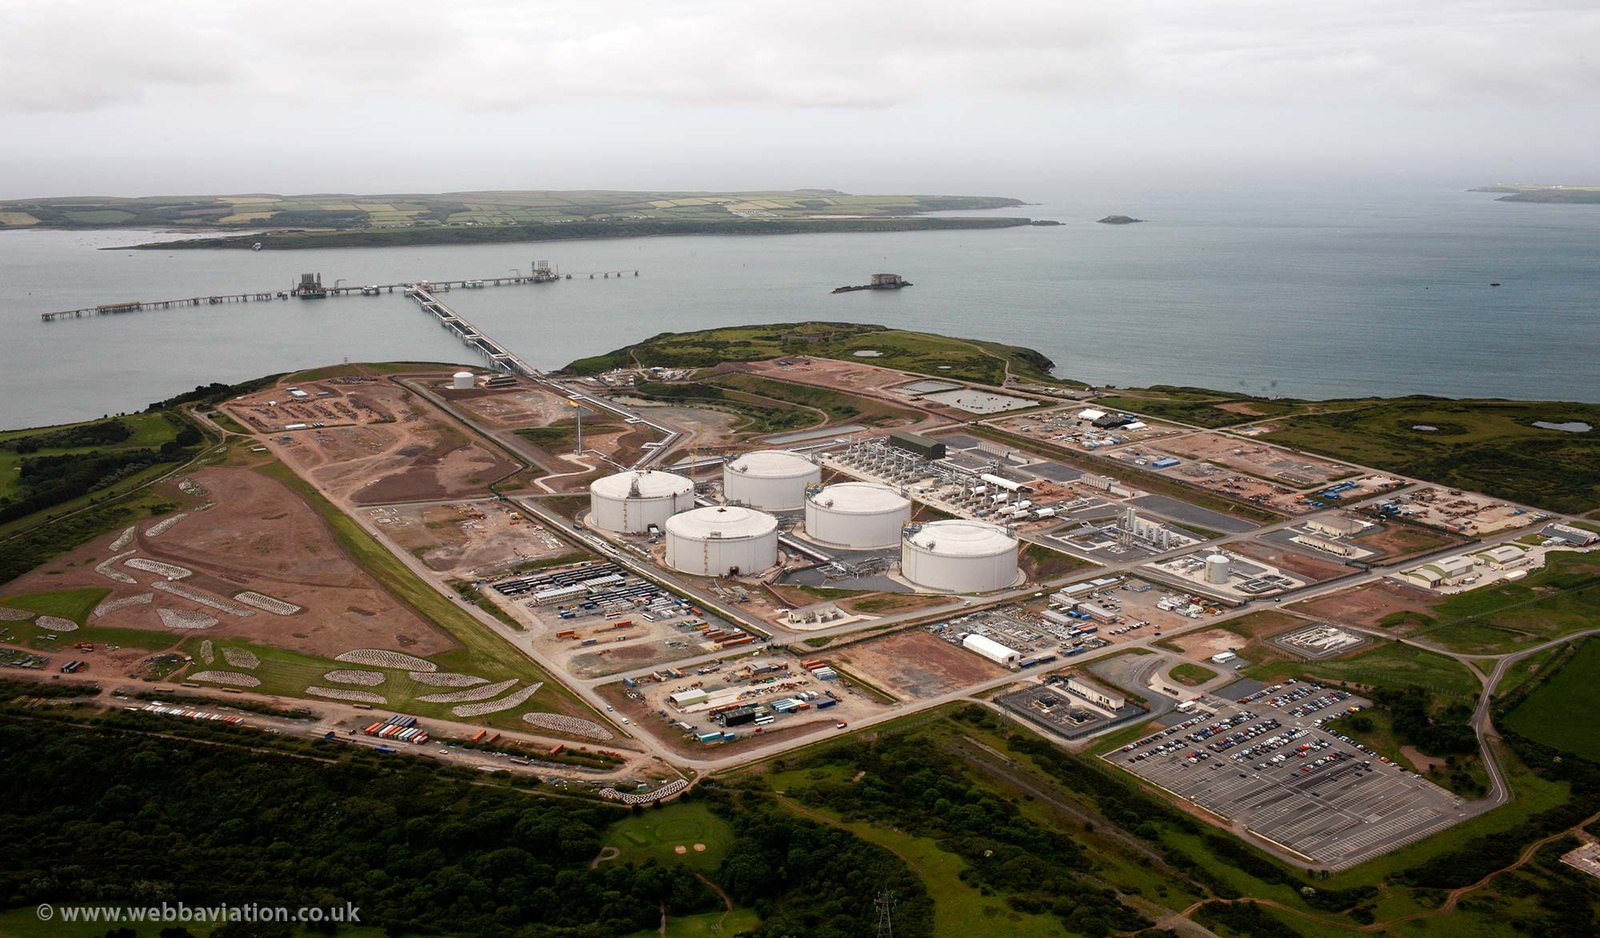 South Hook LNG terminal near Milford Haven aerial photo